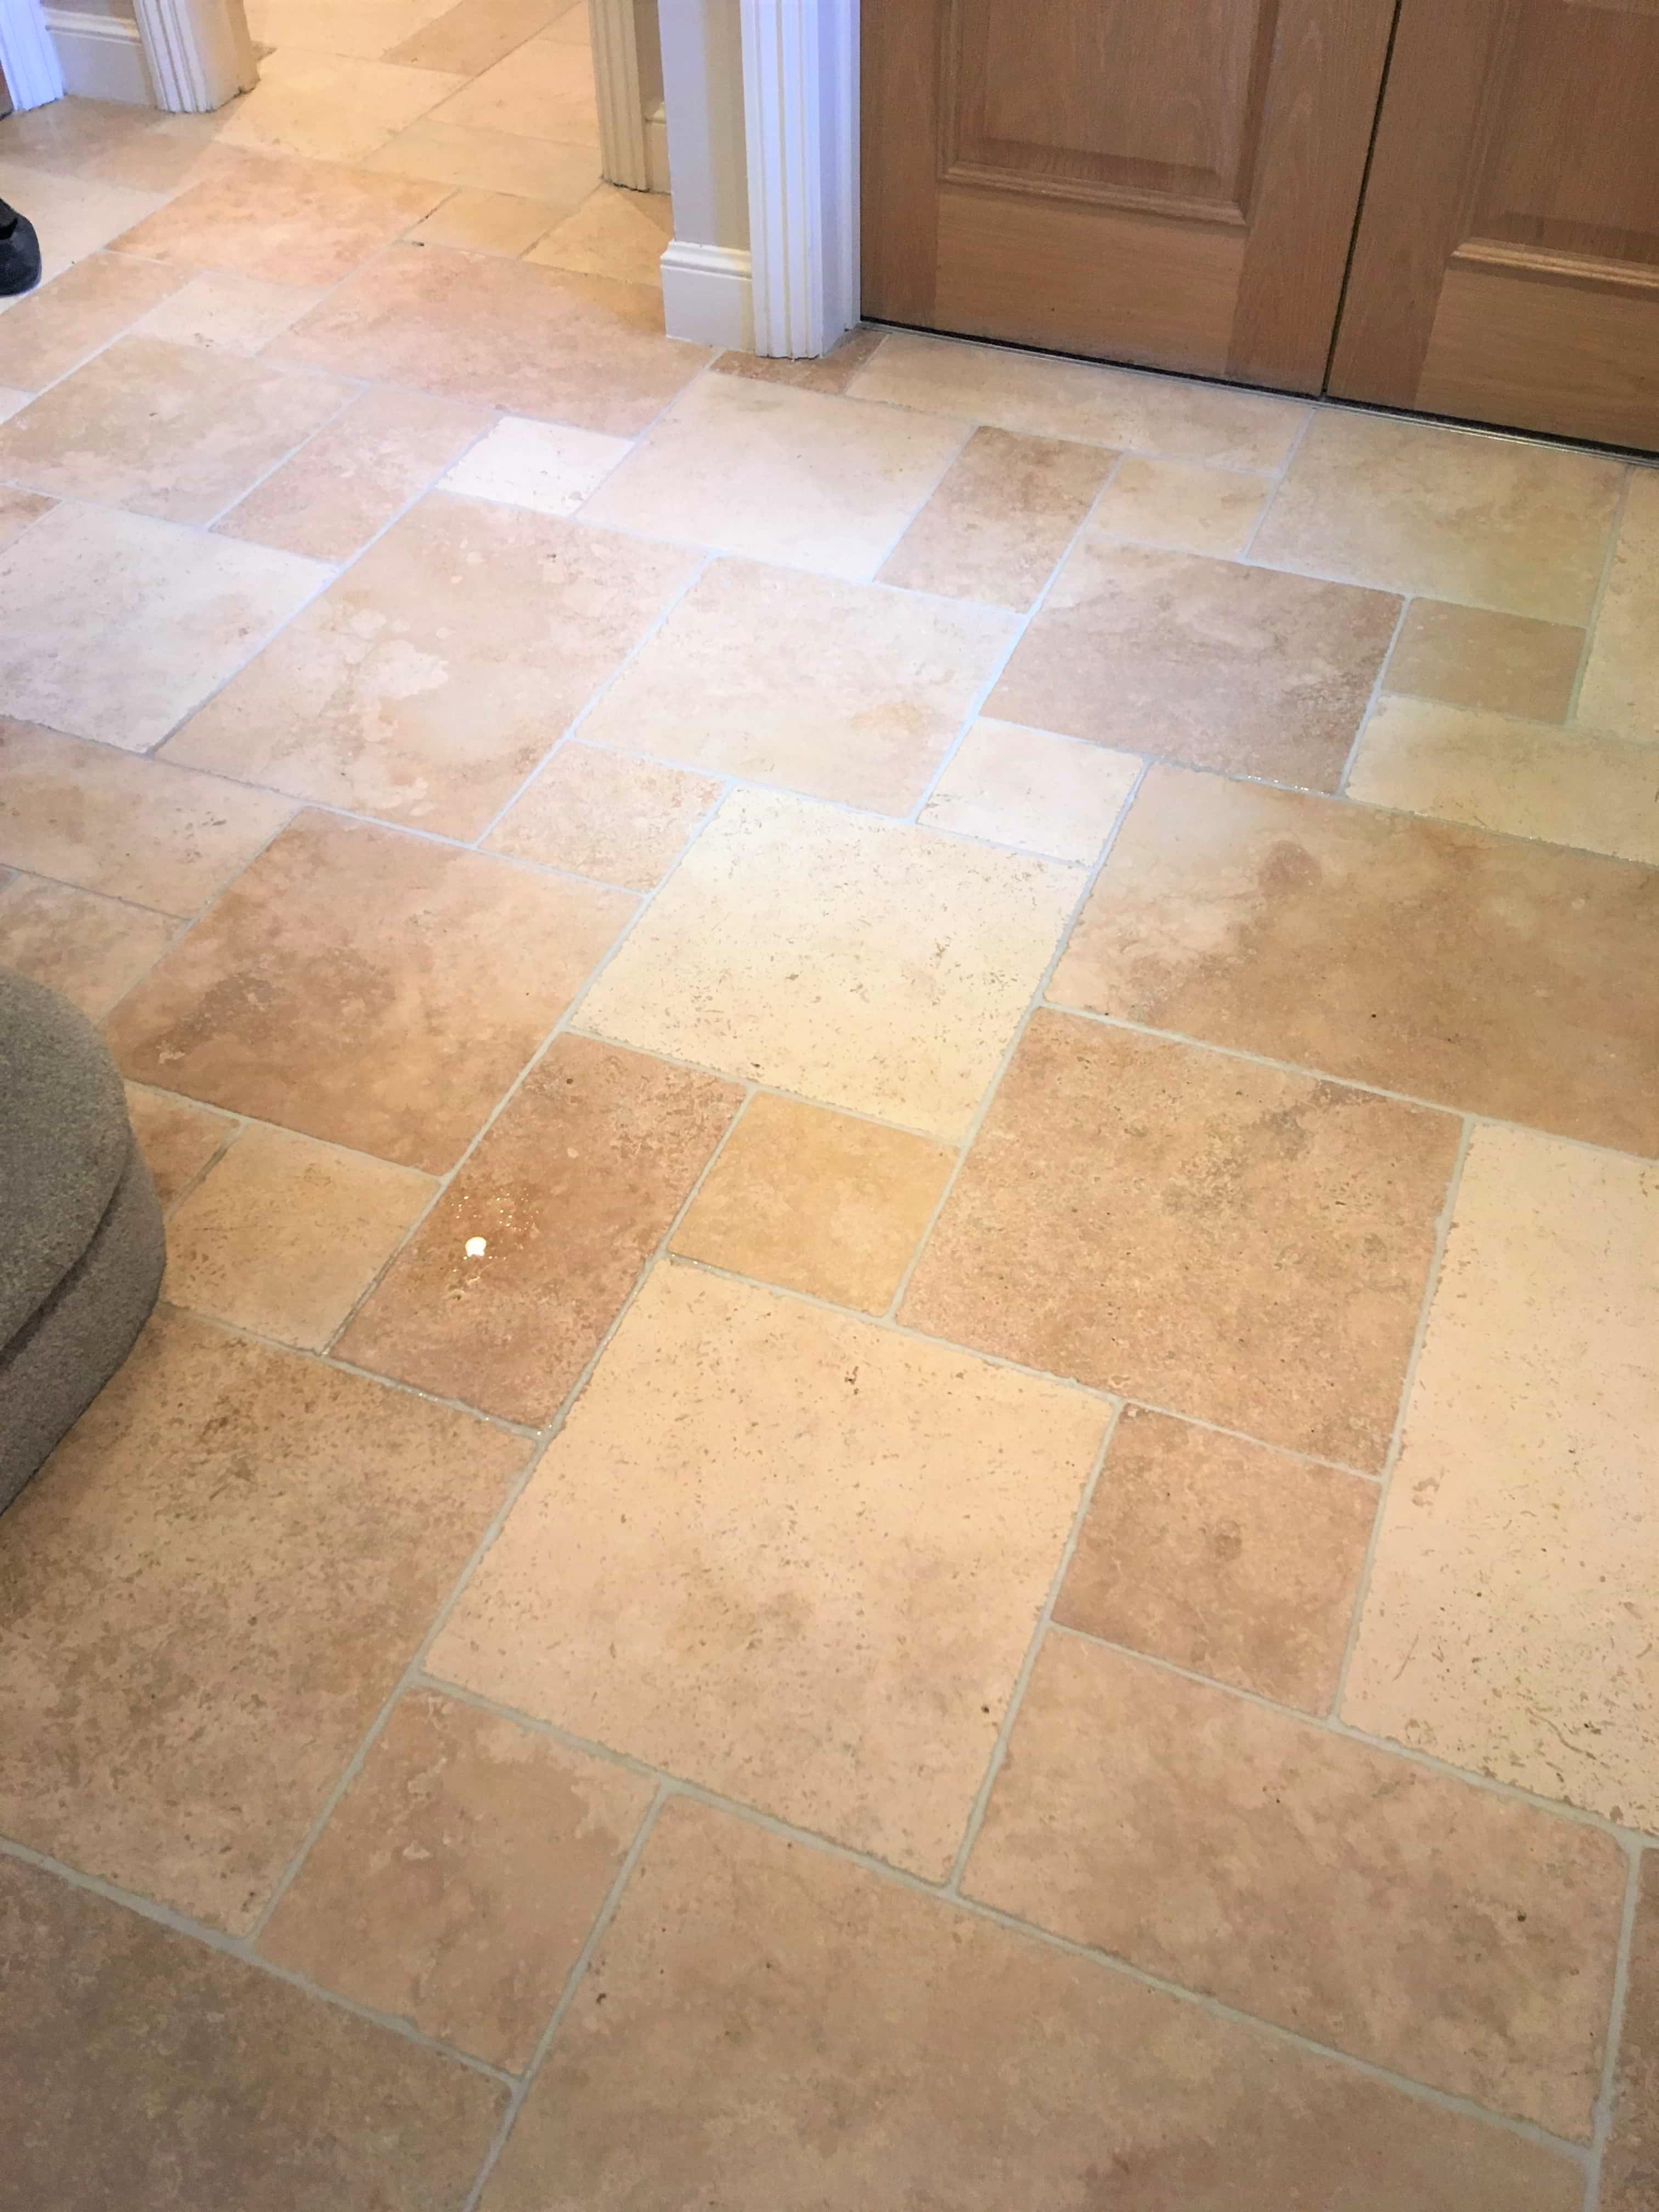 Travertine Tiled Floor After Cleaning Sunbury-on-Thames